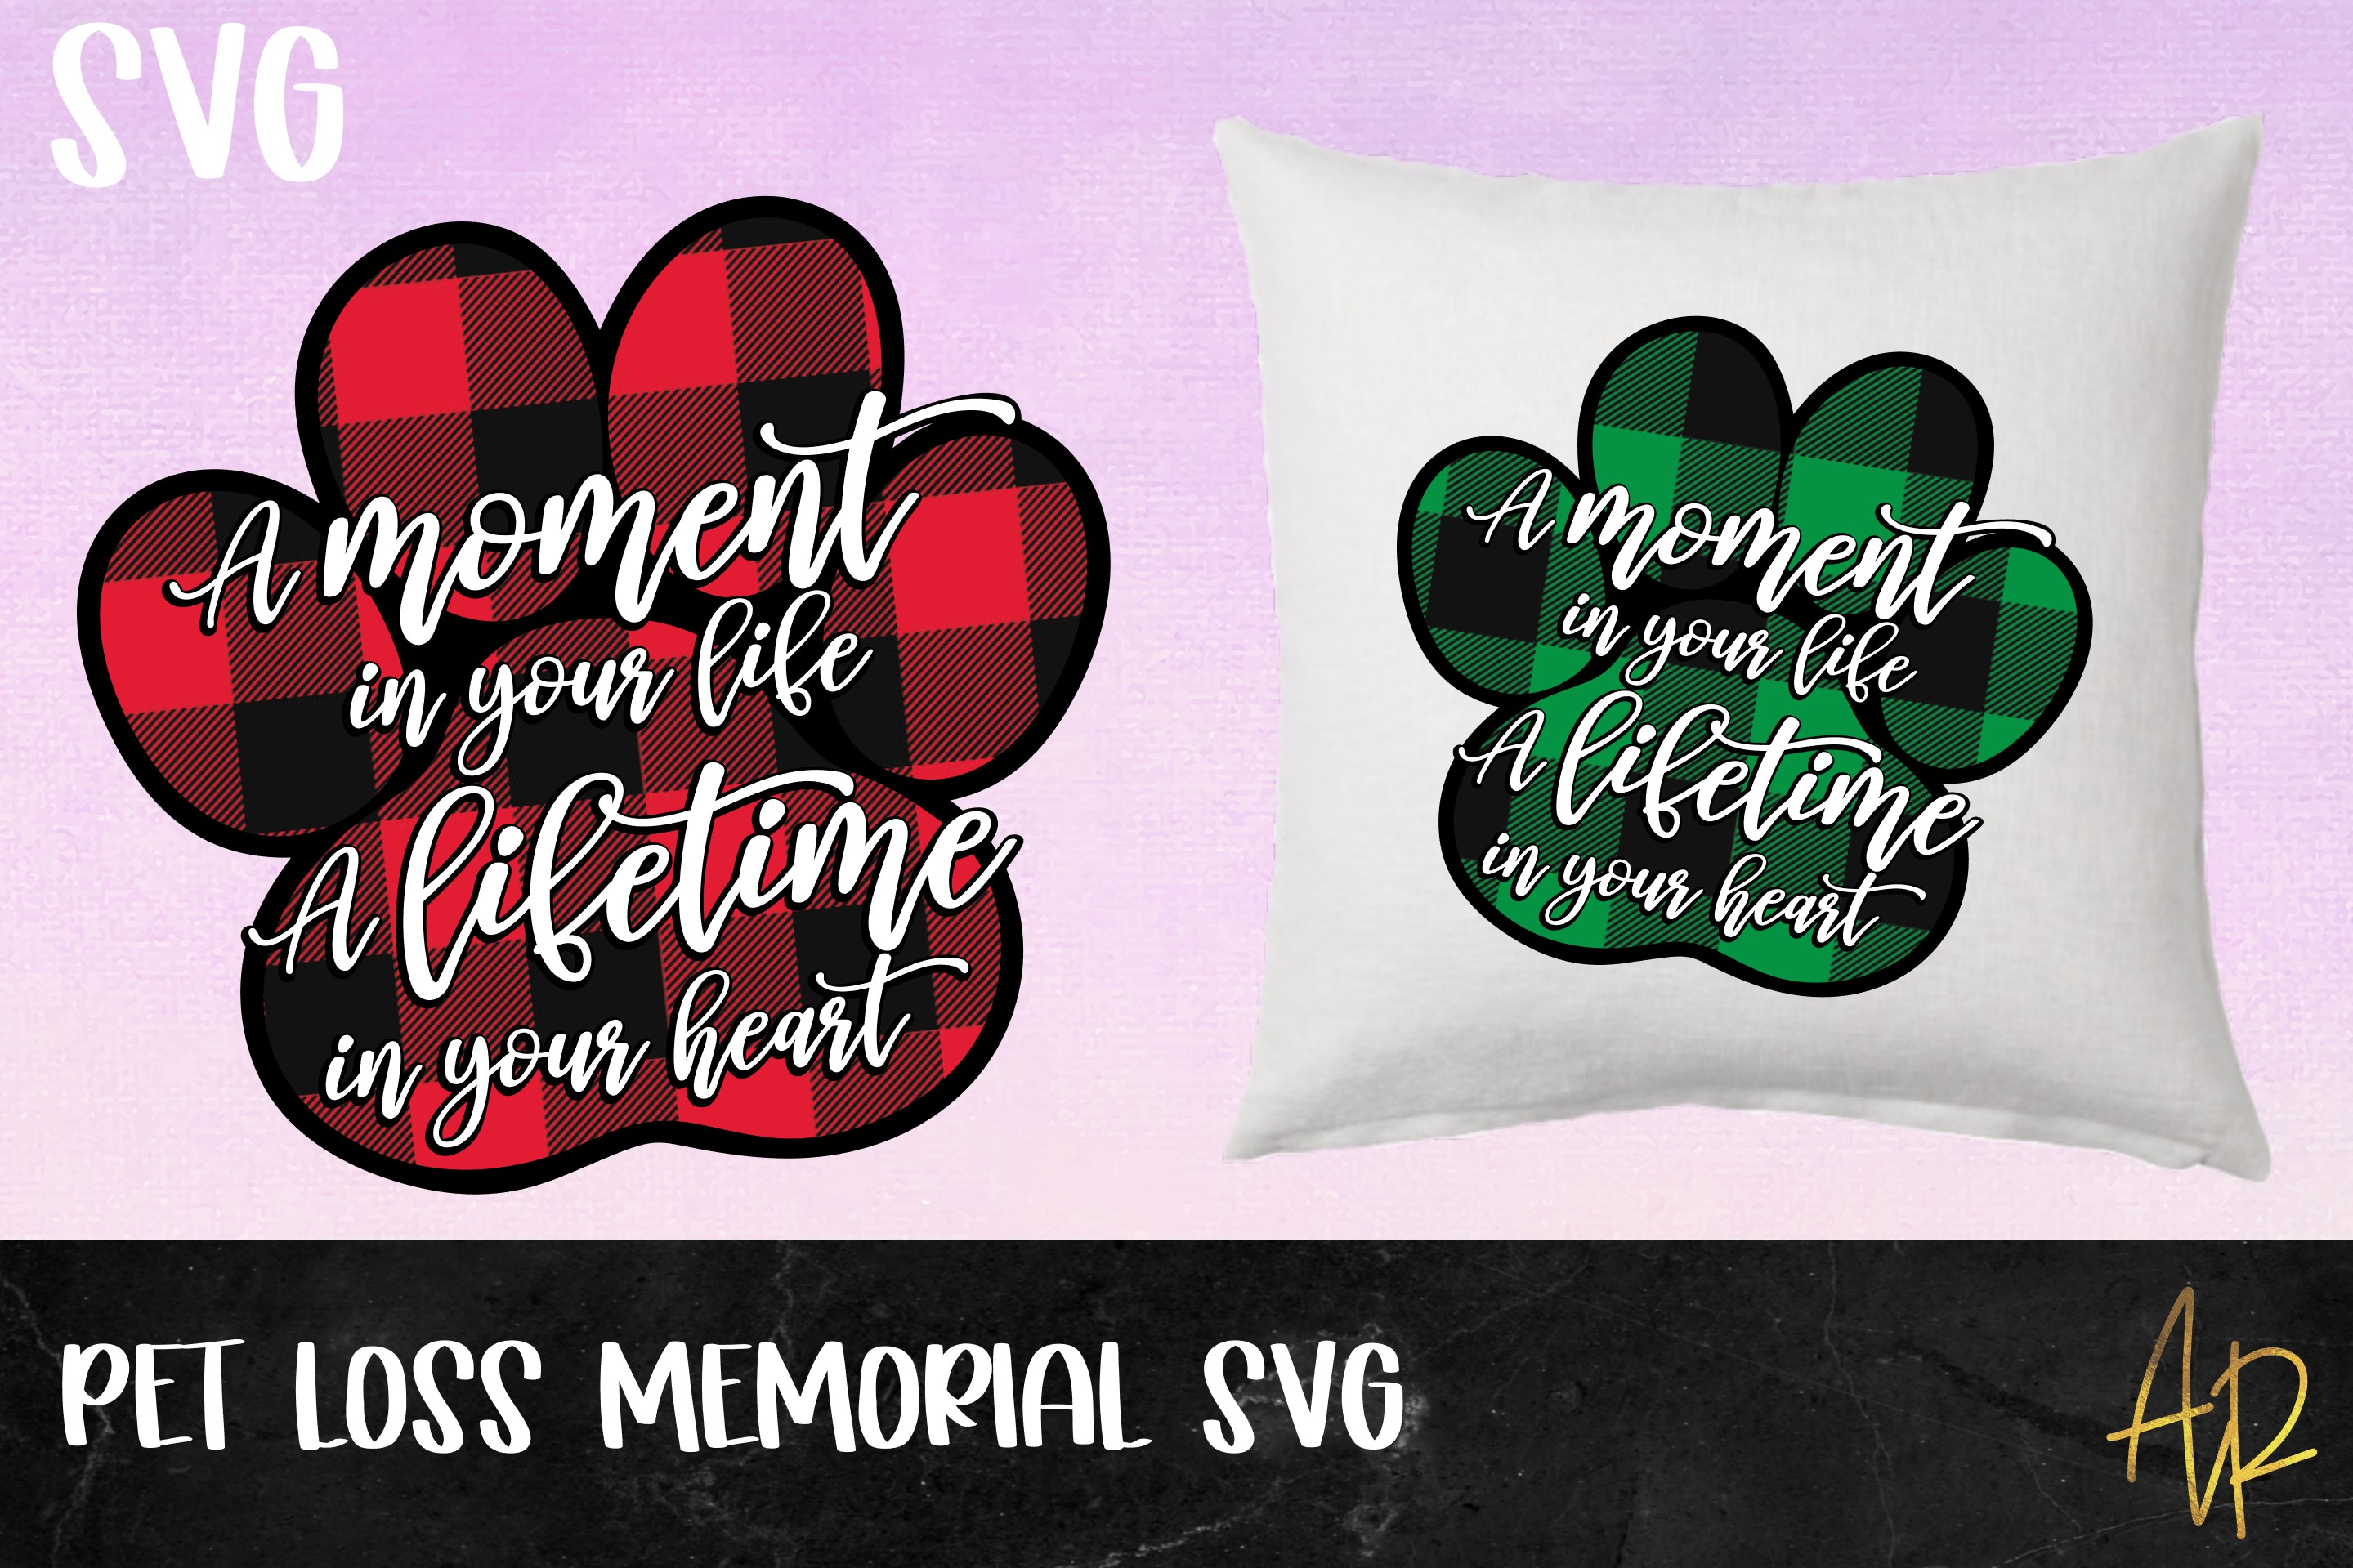 A moment in your life|Pet loss memorial SVG|Cat Dog example image 1